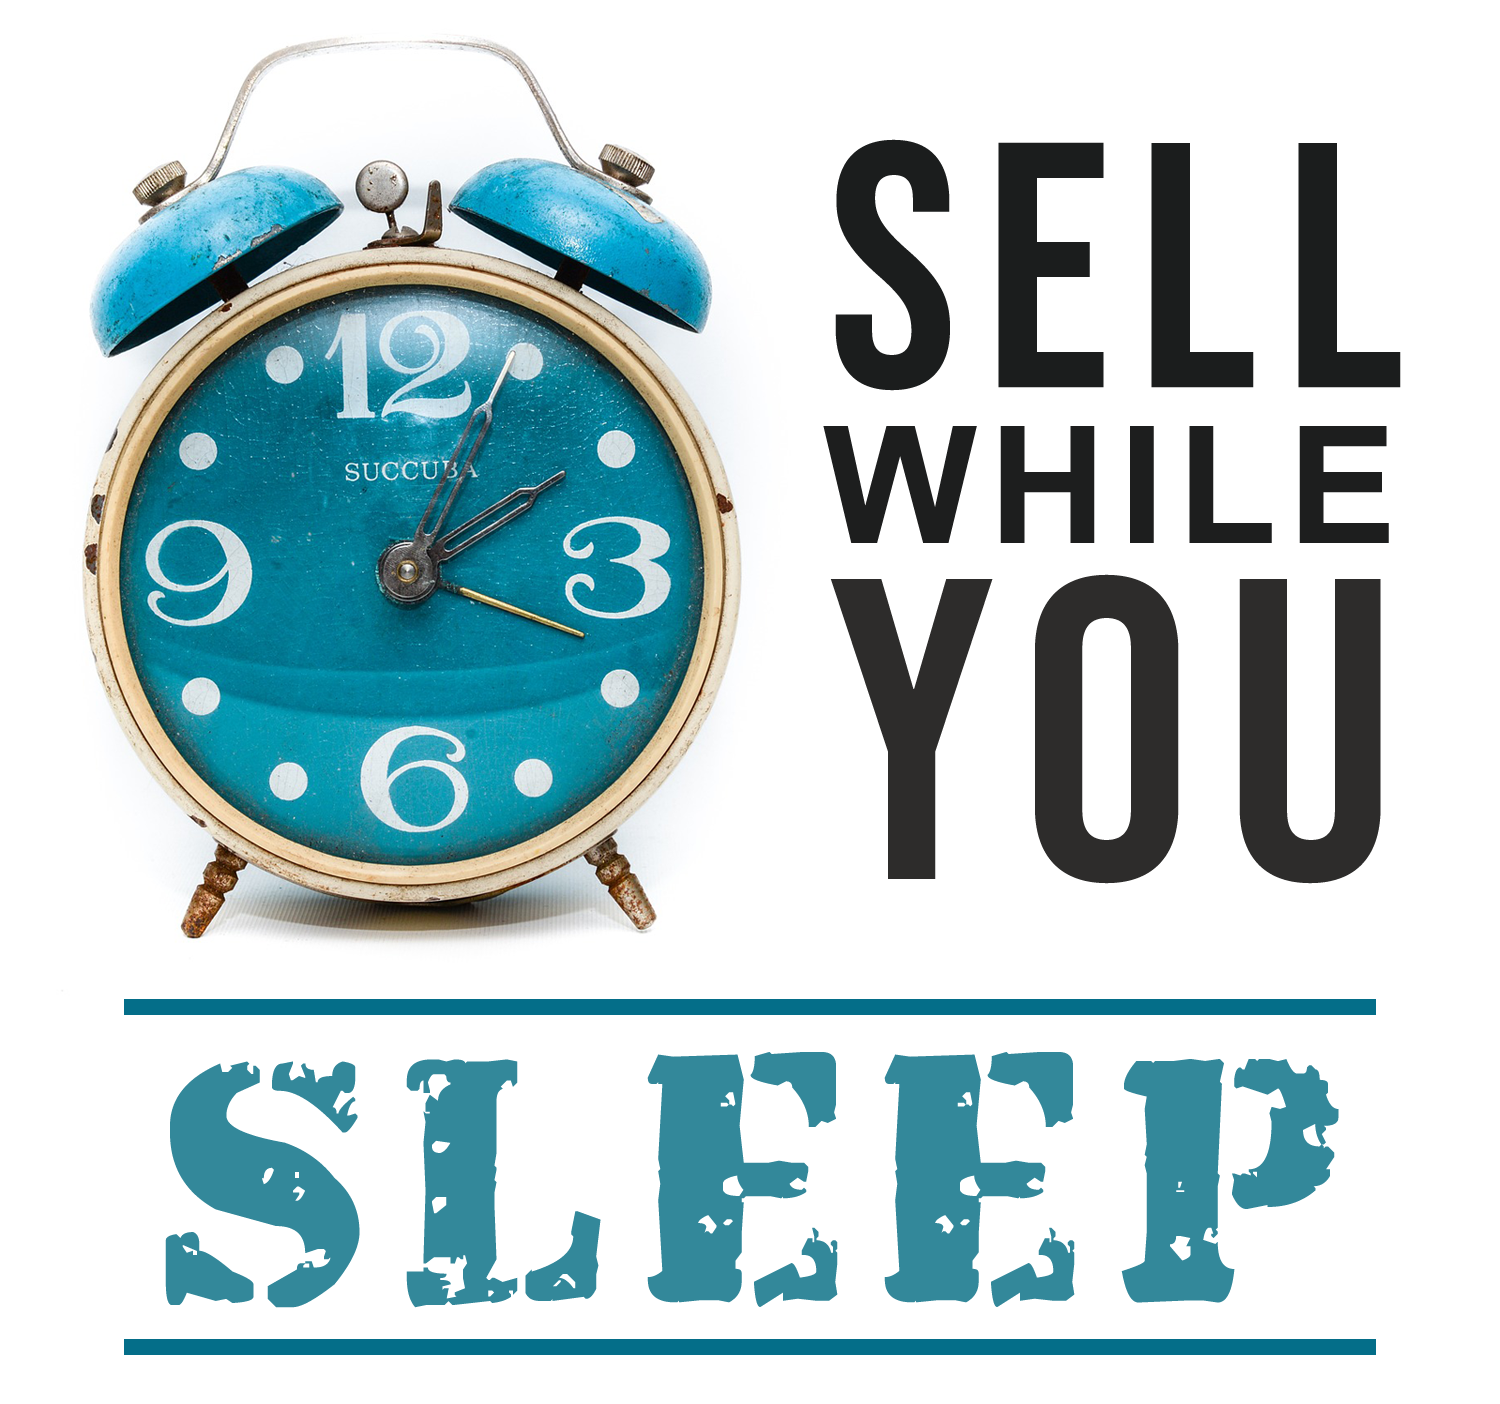 75013815 Sell While You Sleep - The Sell While You Sleep Podcast